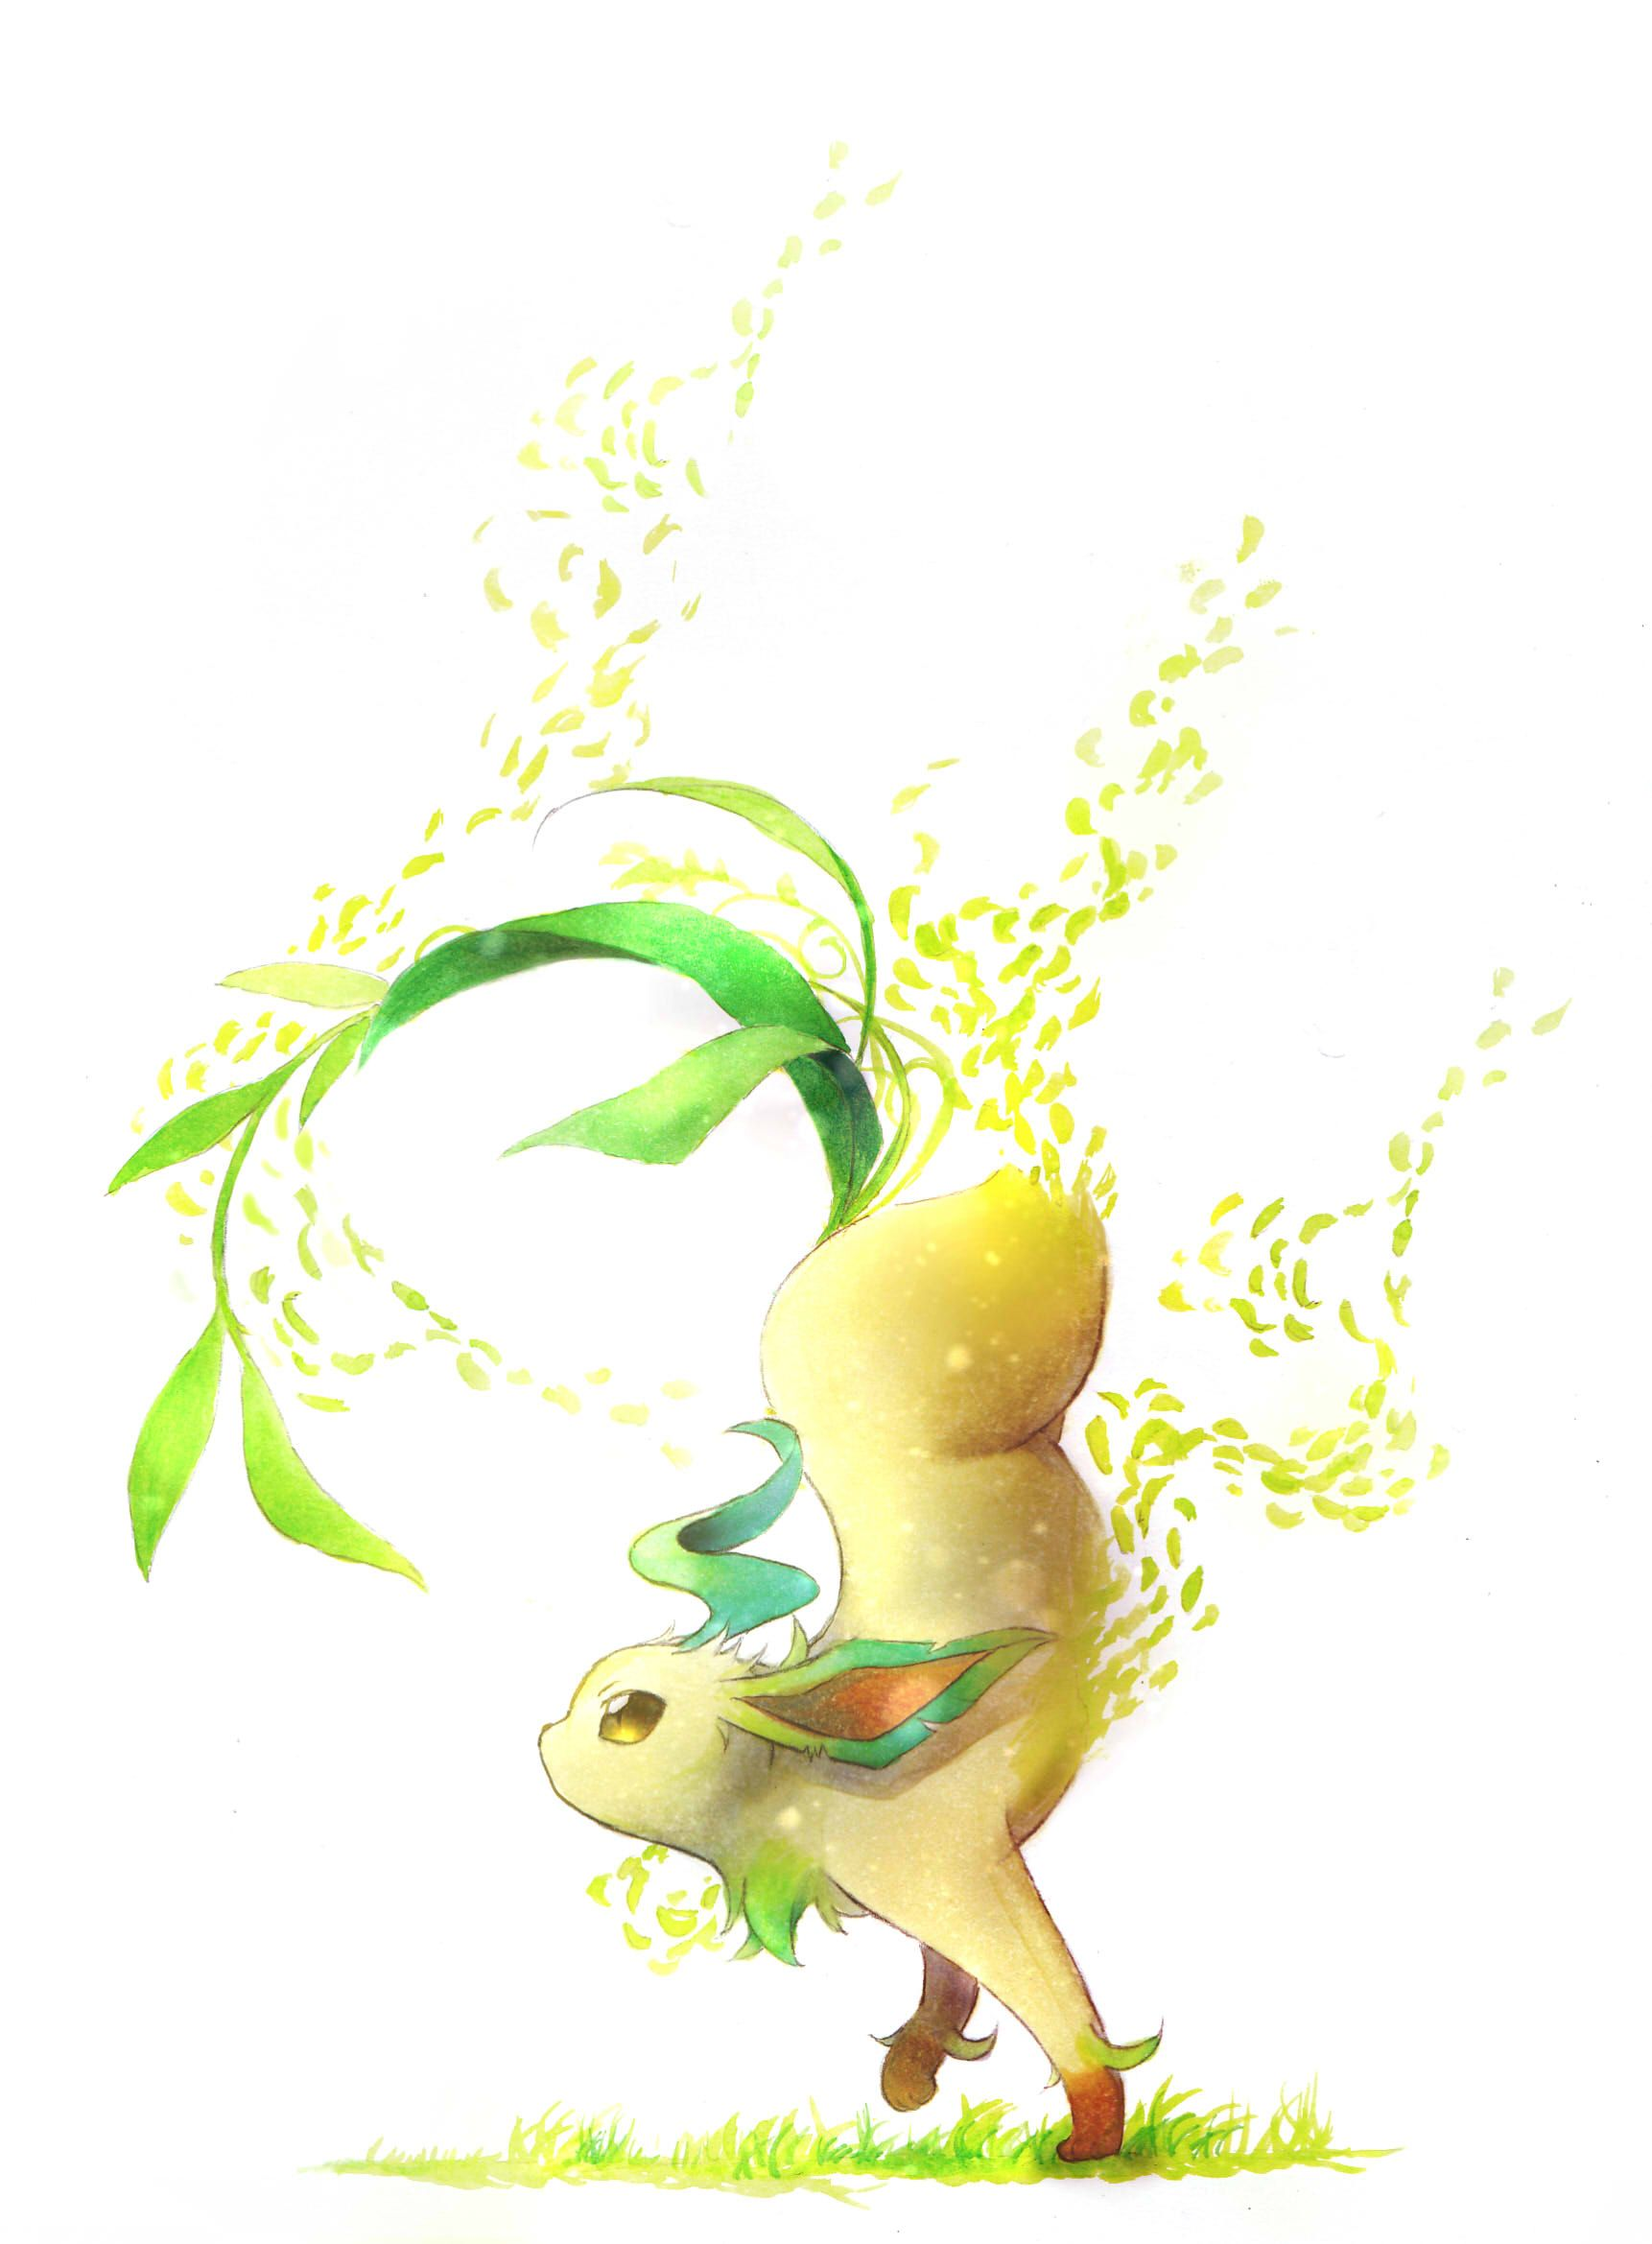 1722x2339 Leafeon - Pokémon - Mobile Wallpaper #2120321 - Zerochan Anime Image ...